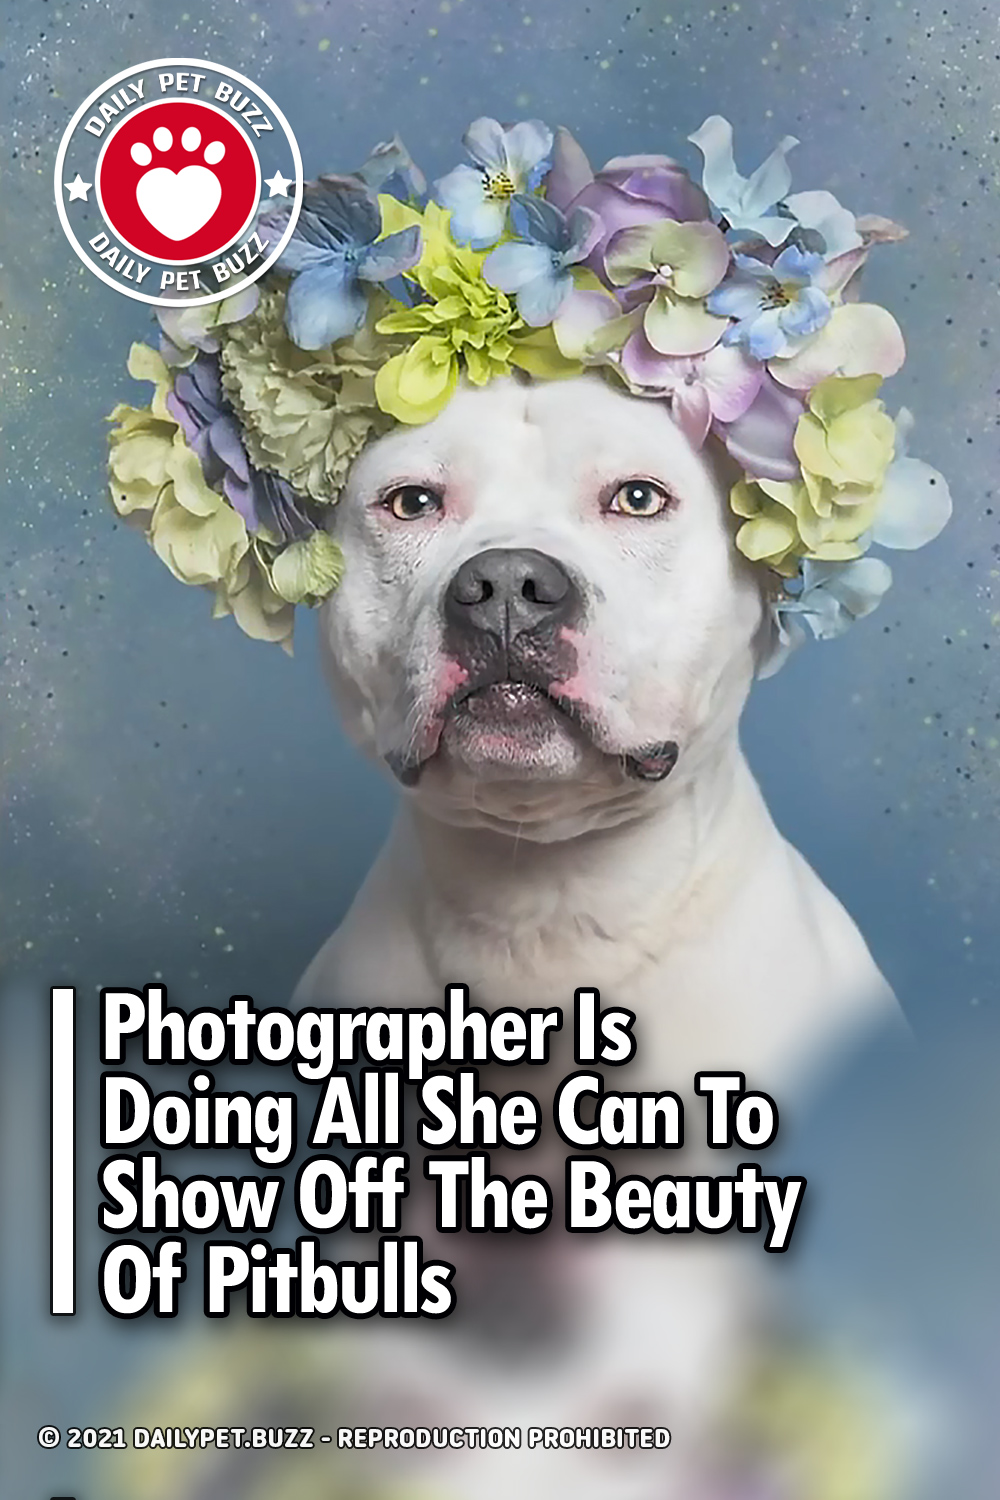 Photographer Is Doing All She Can To Show Off The Beauty Of Pitbulls